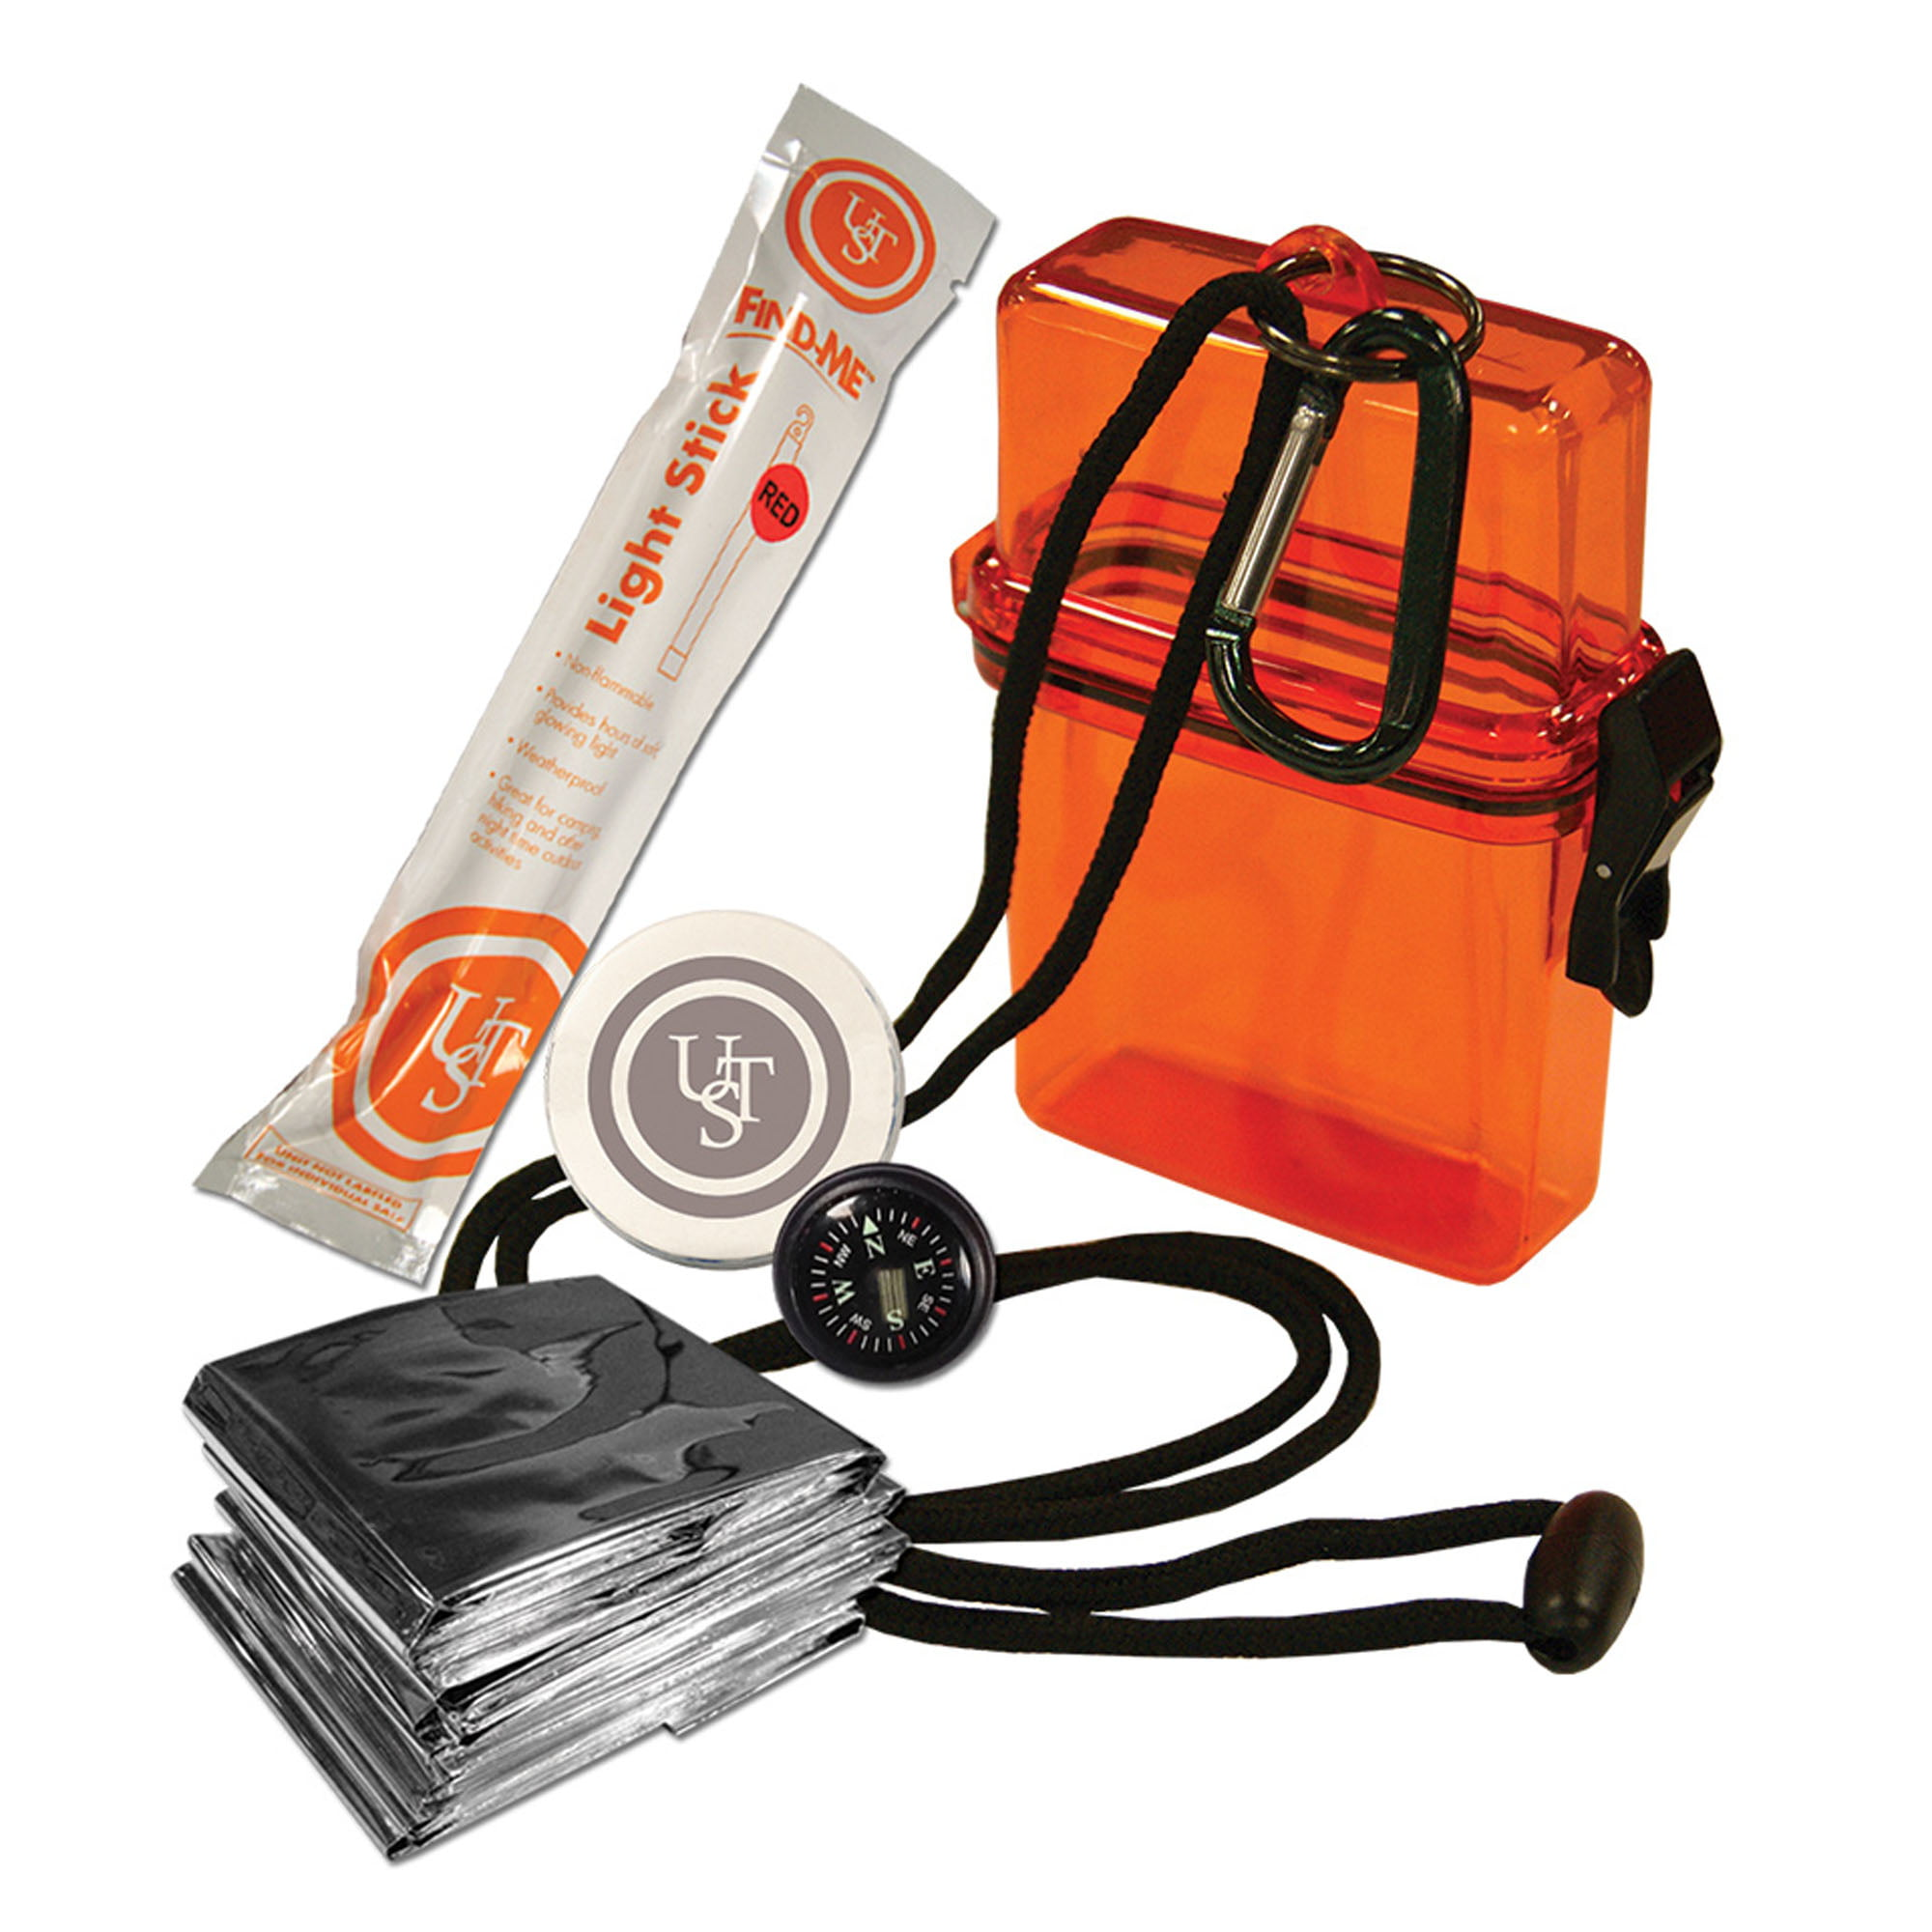 Watertight Survival Kit 1.0, Orange by UST Brands LLC